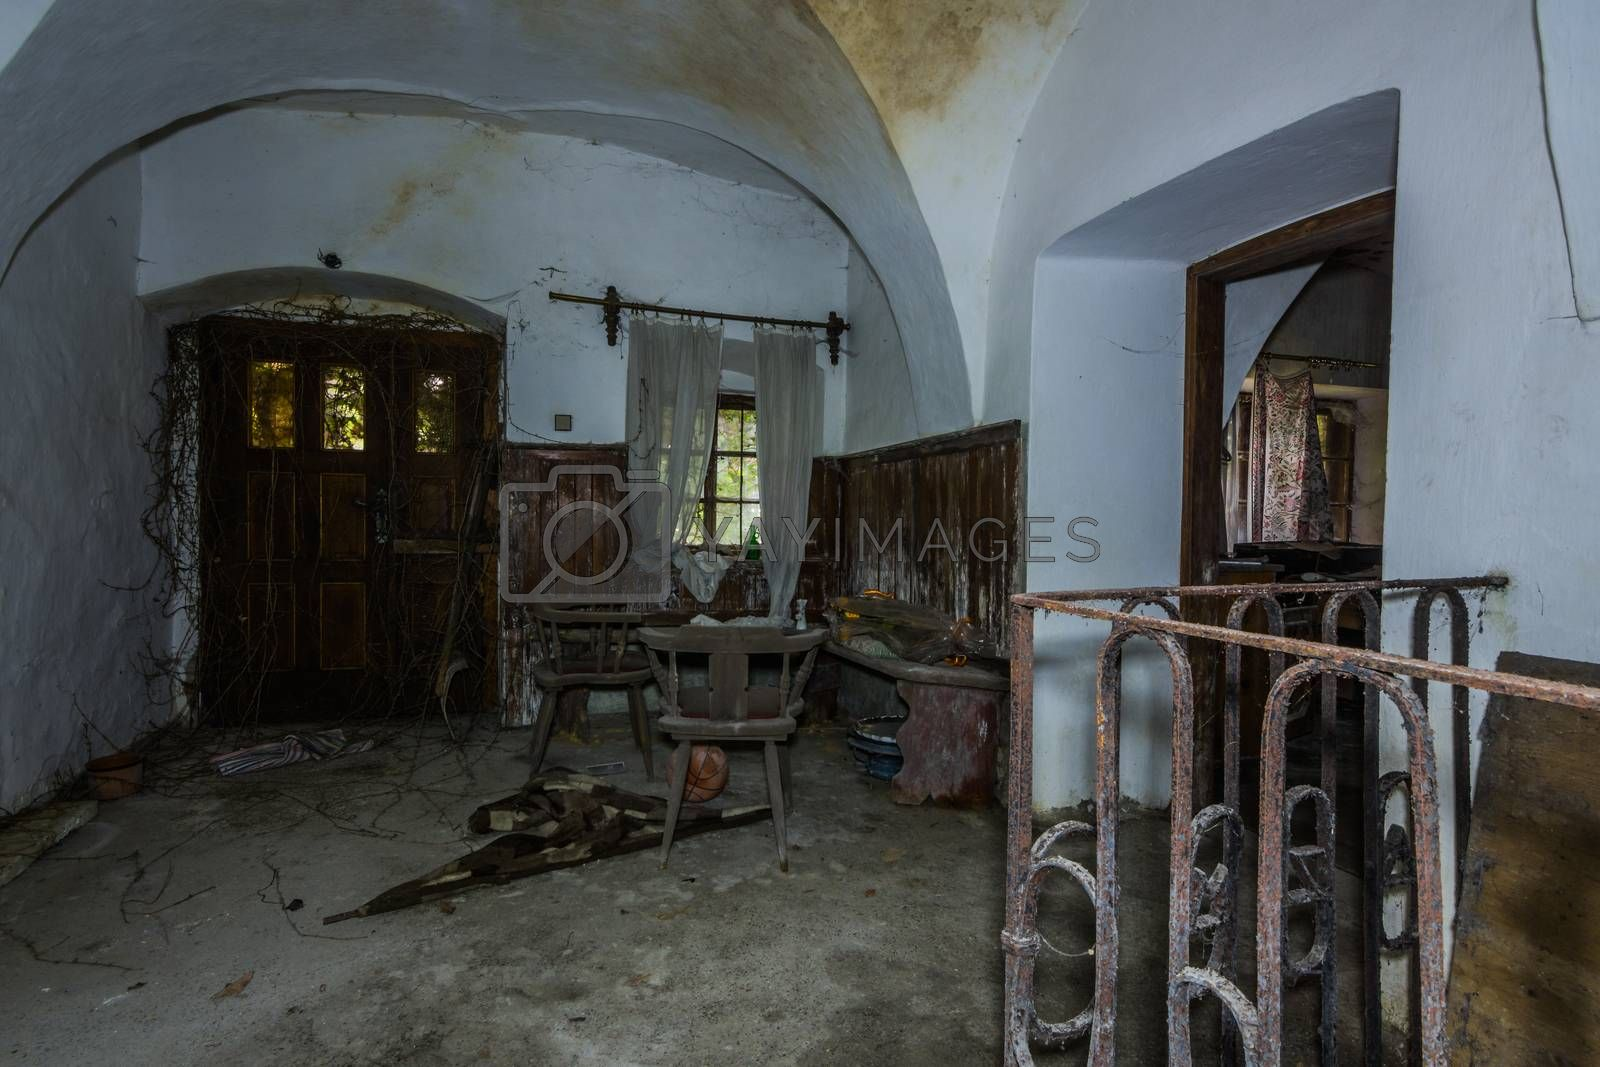 overgrown anteroom in a mill with objects